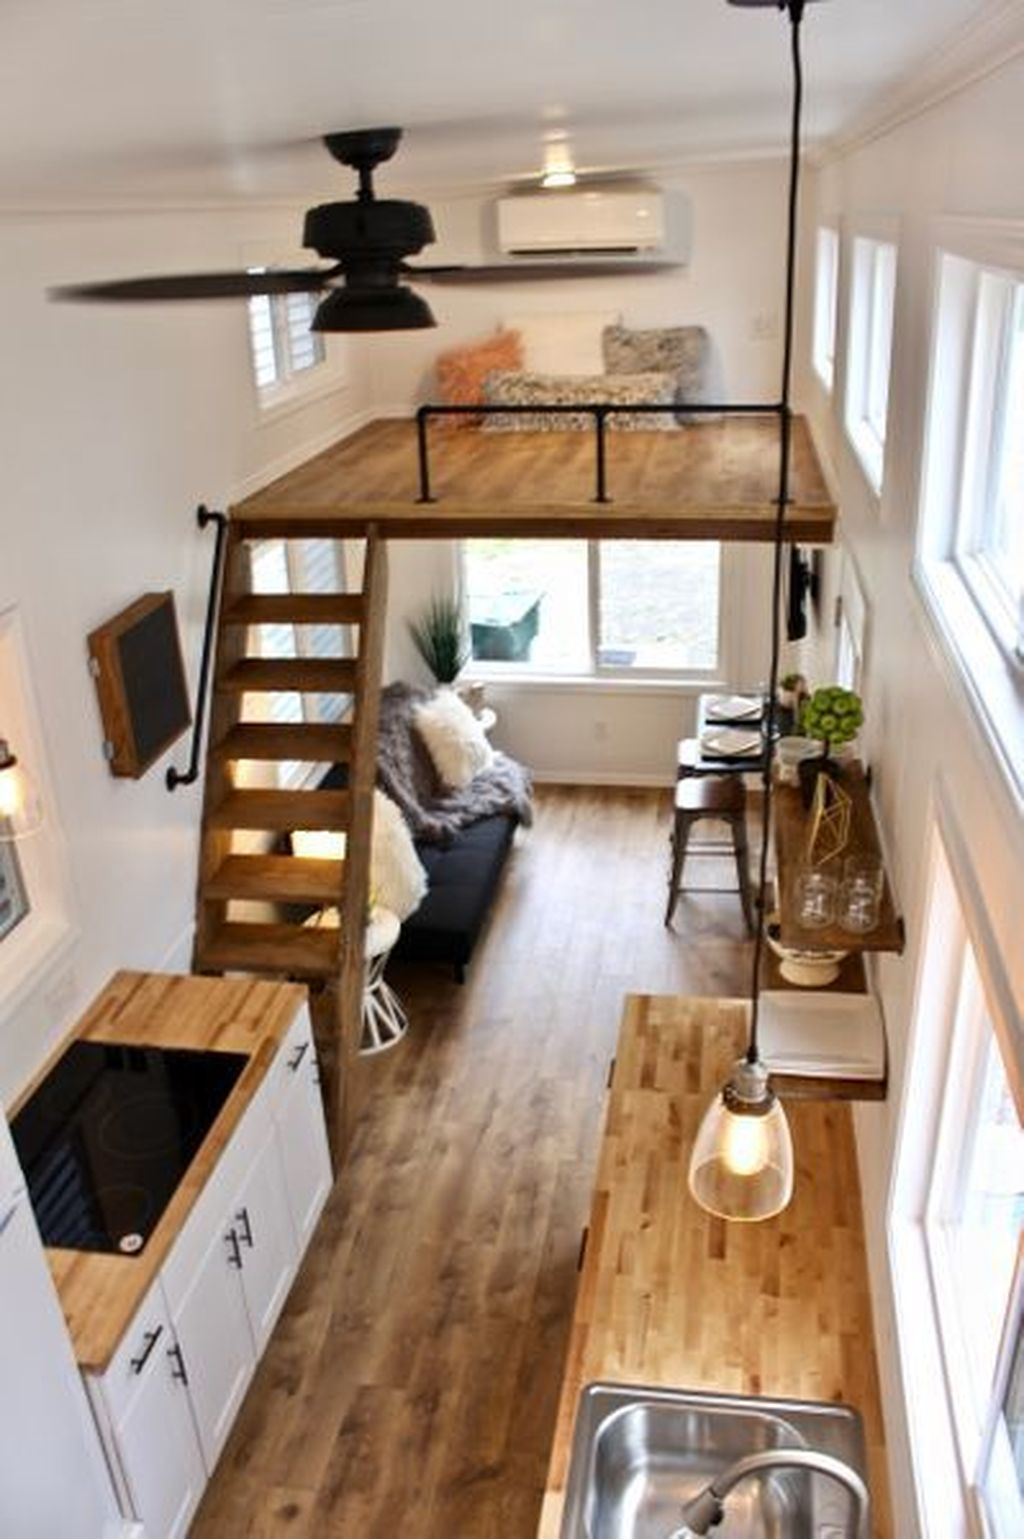 Tiny House Design Ideas To Inspire You Easy Furniture Diy Projects For Interior Design Cute Furnit Tiny House Loft Best Tiny House Tiny House Interior Design